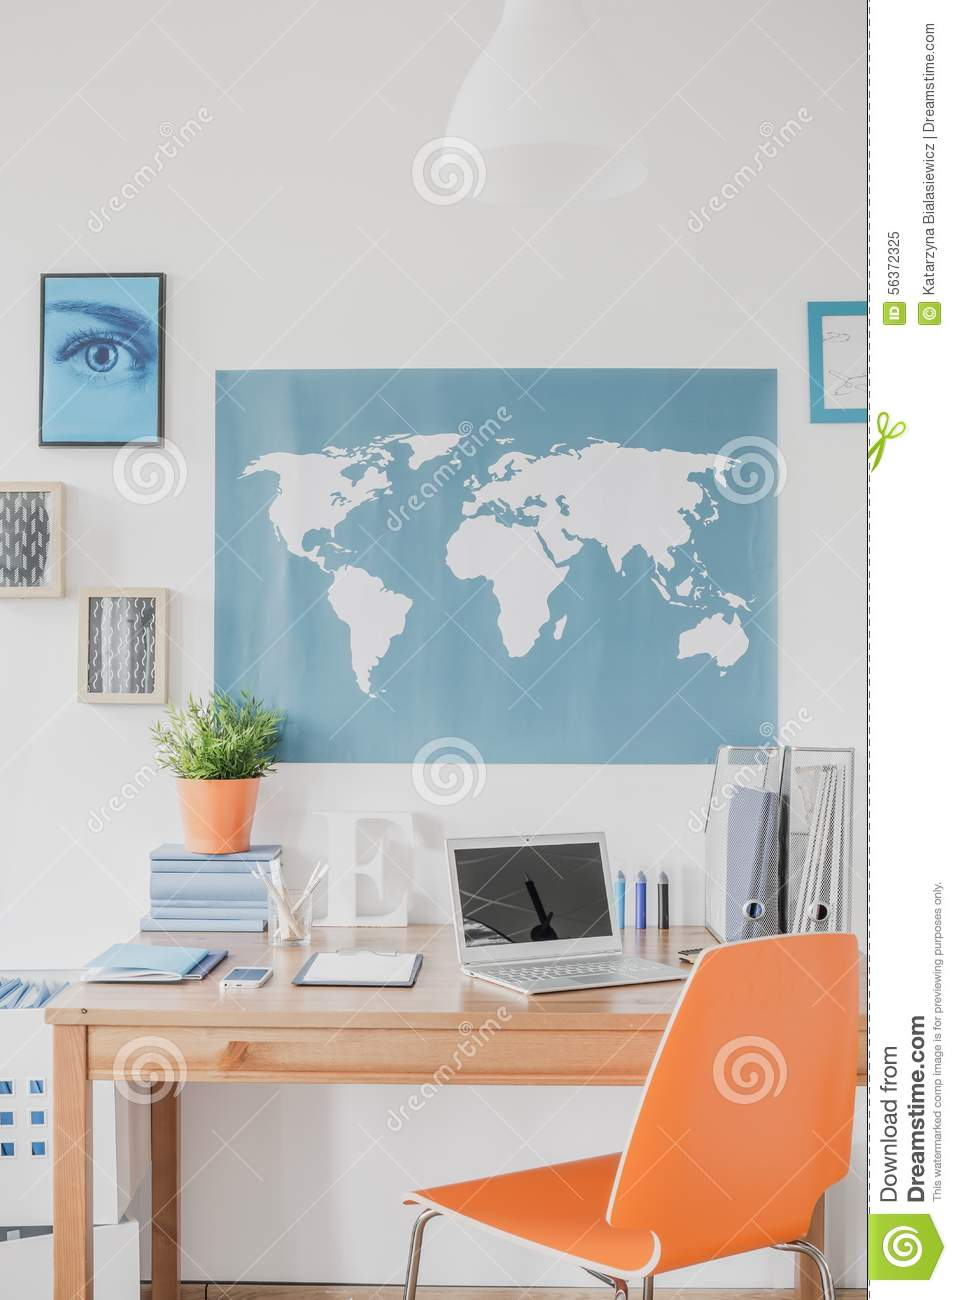 World map above the desk stock image image of equipment 56372325 world map above the desk gumiabroncs Images